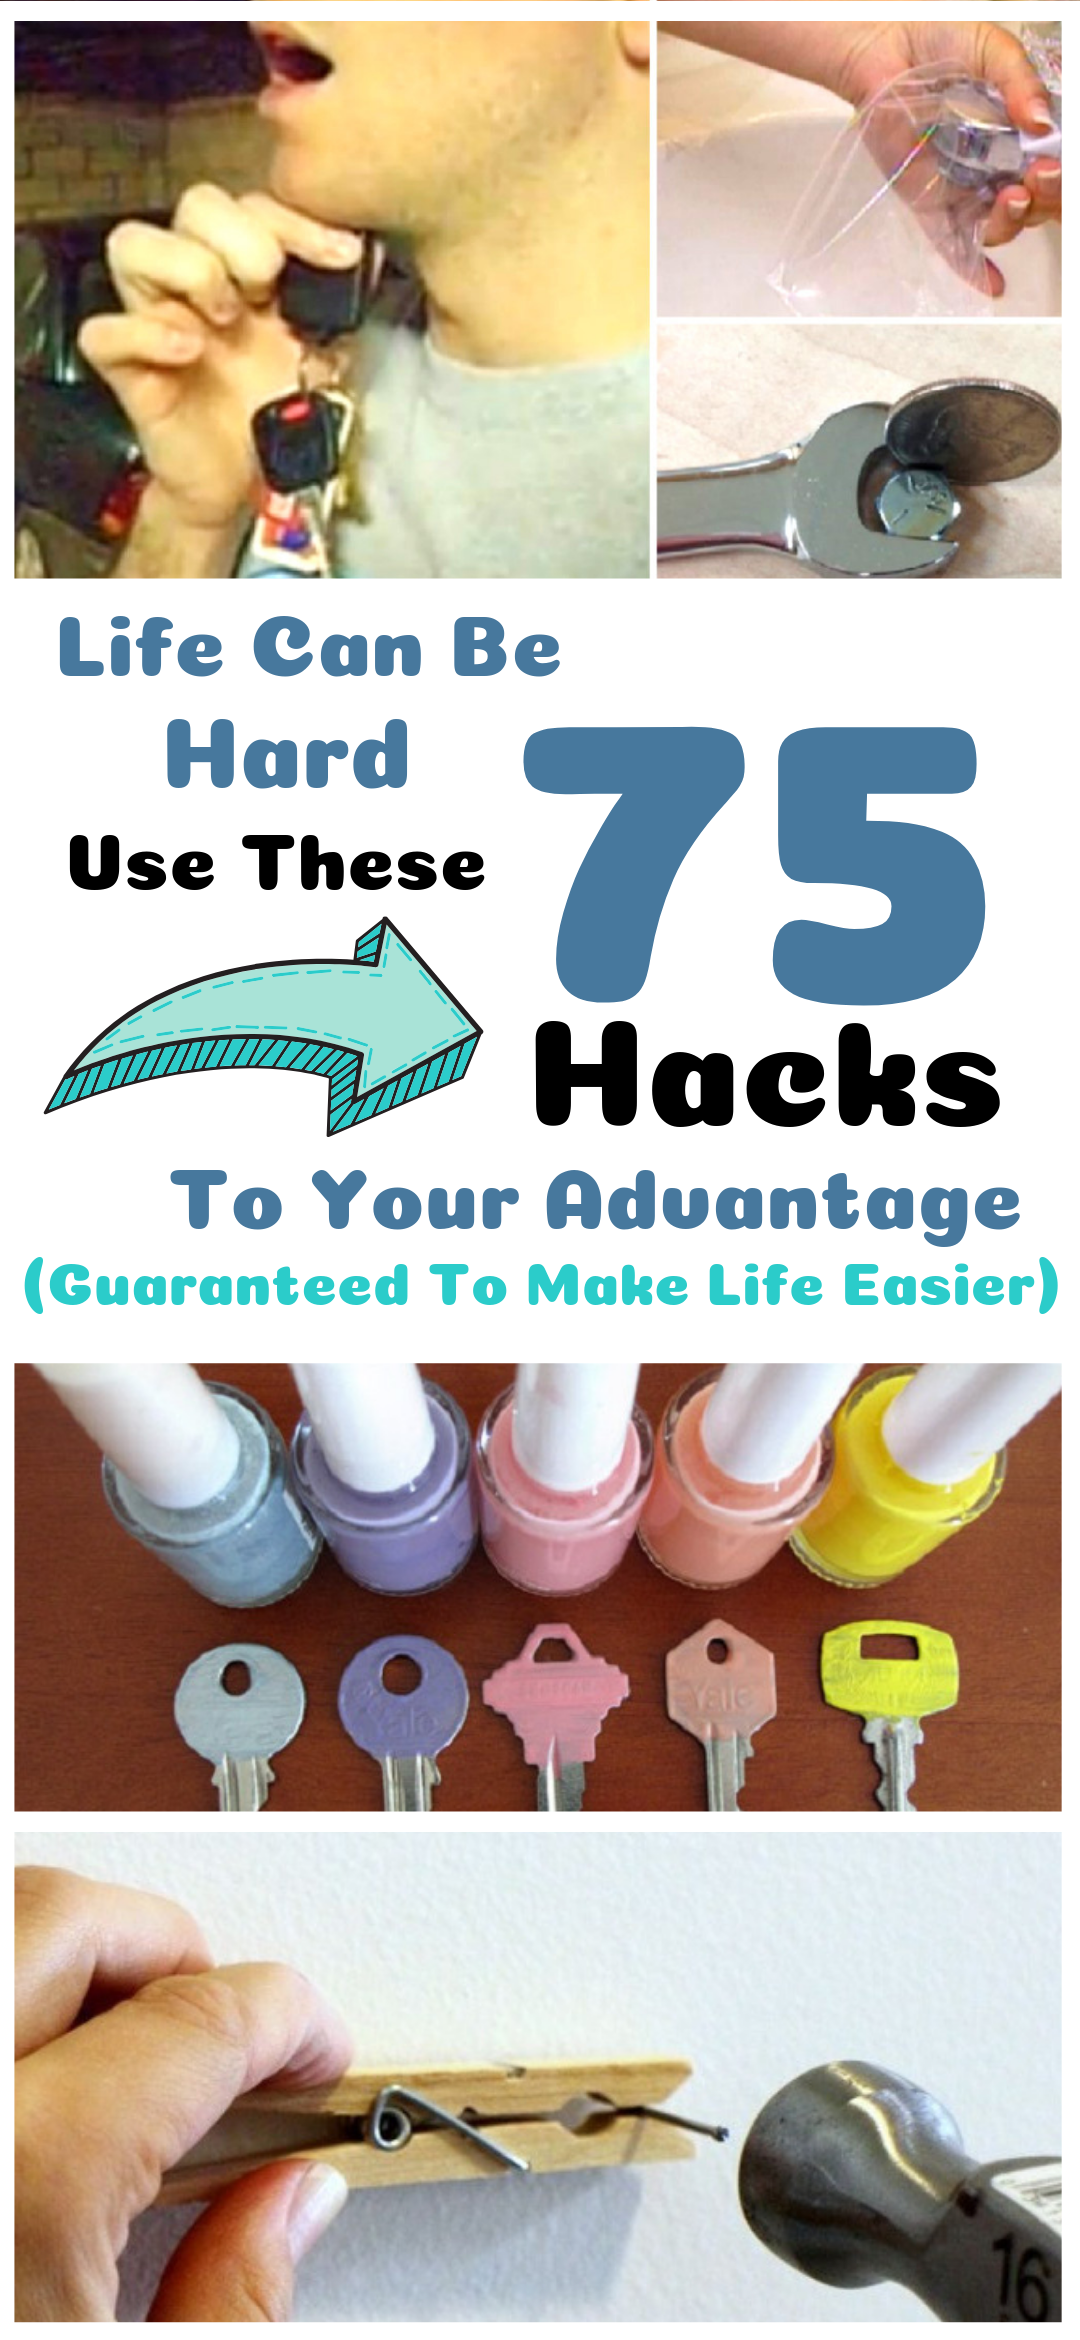 Life Can Be Hard  Use These 75 Life Hacks To Your Advantage (Guaranteed To Make Life Easier) is part of Useful life hacks, Hacks diy, Life hacks, Cleaning hacks, Household hacks, Simple life hacks - Just try them out for yourself and see